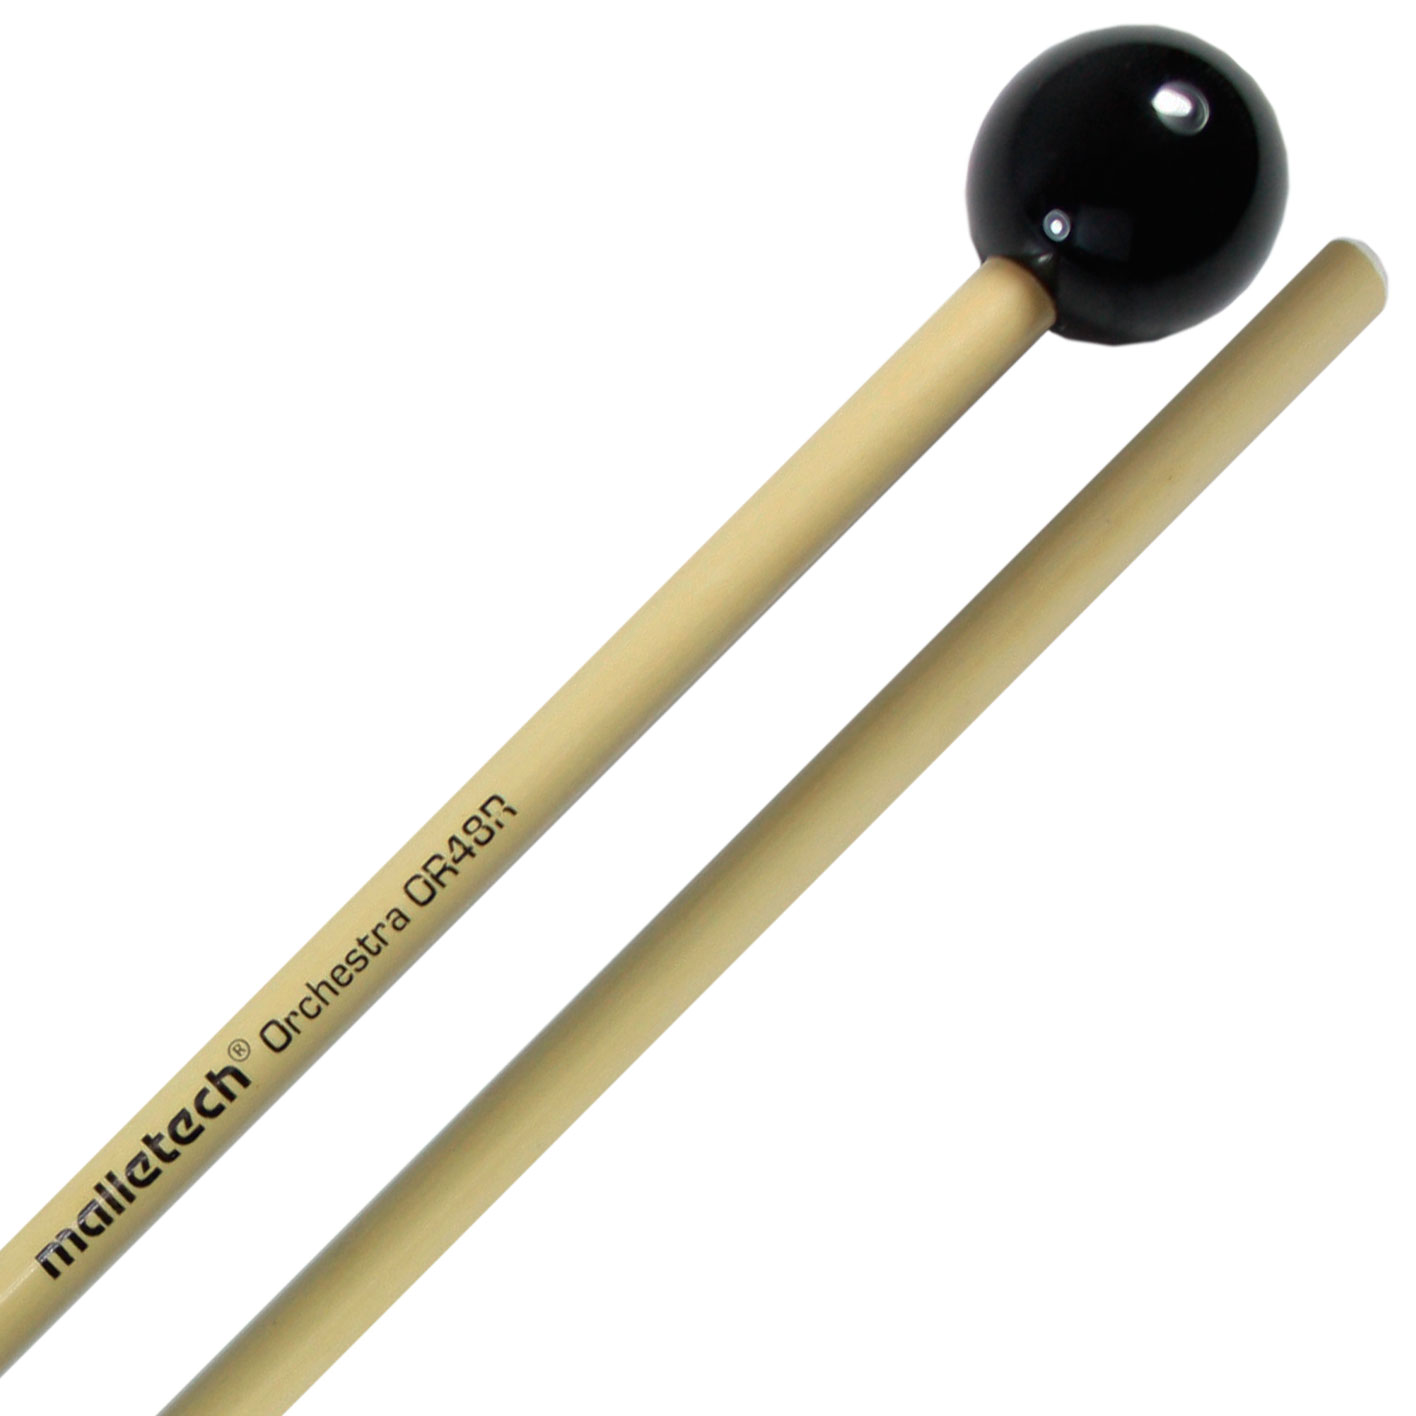 Malletech Orchestra Series Heavy Bell Mallets with Rattan Shafts